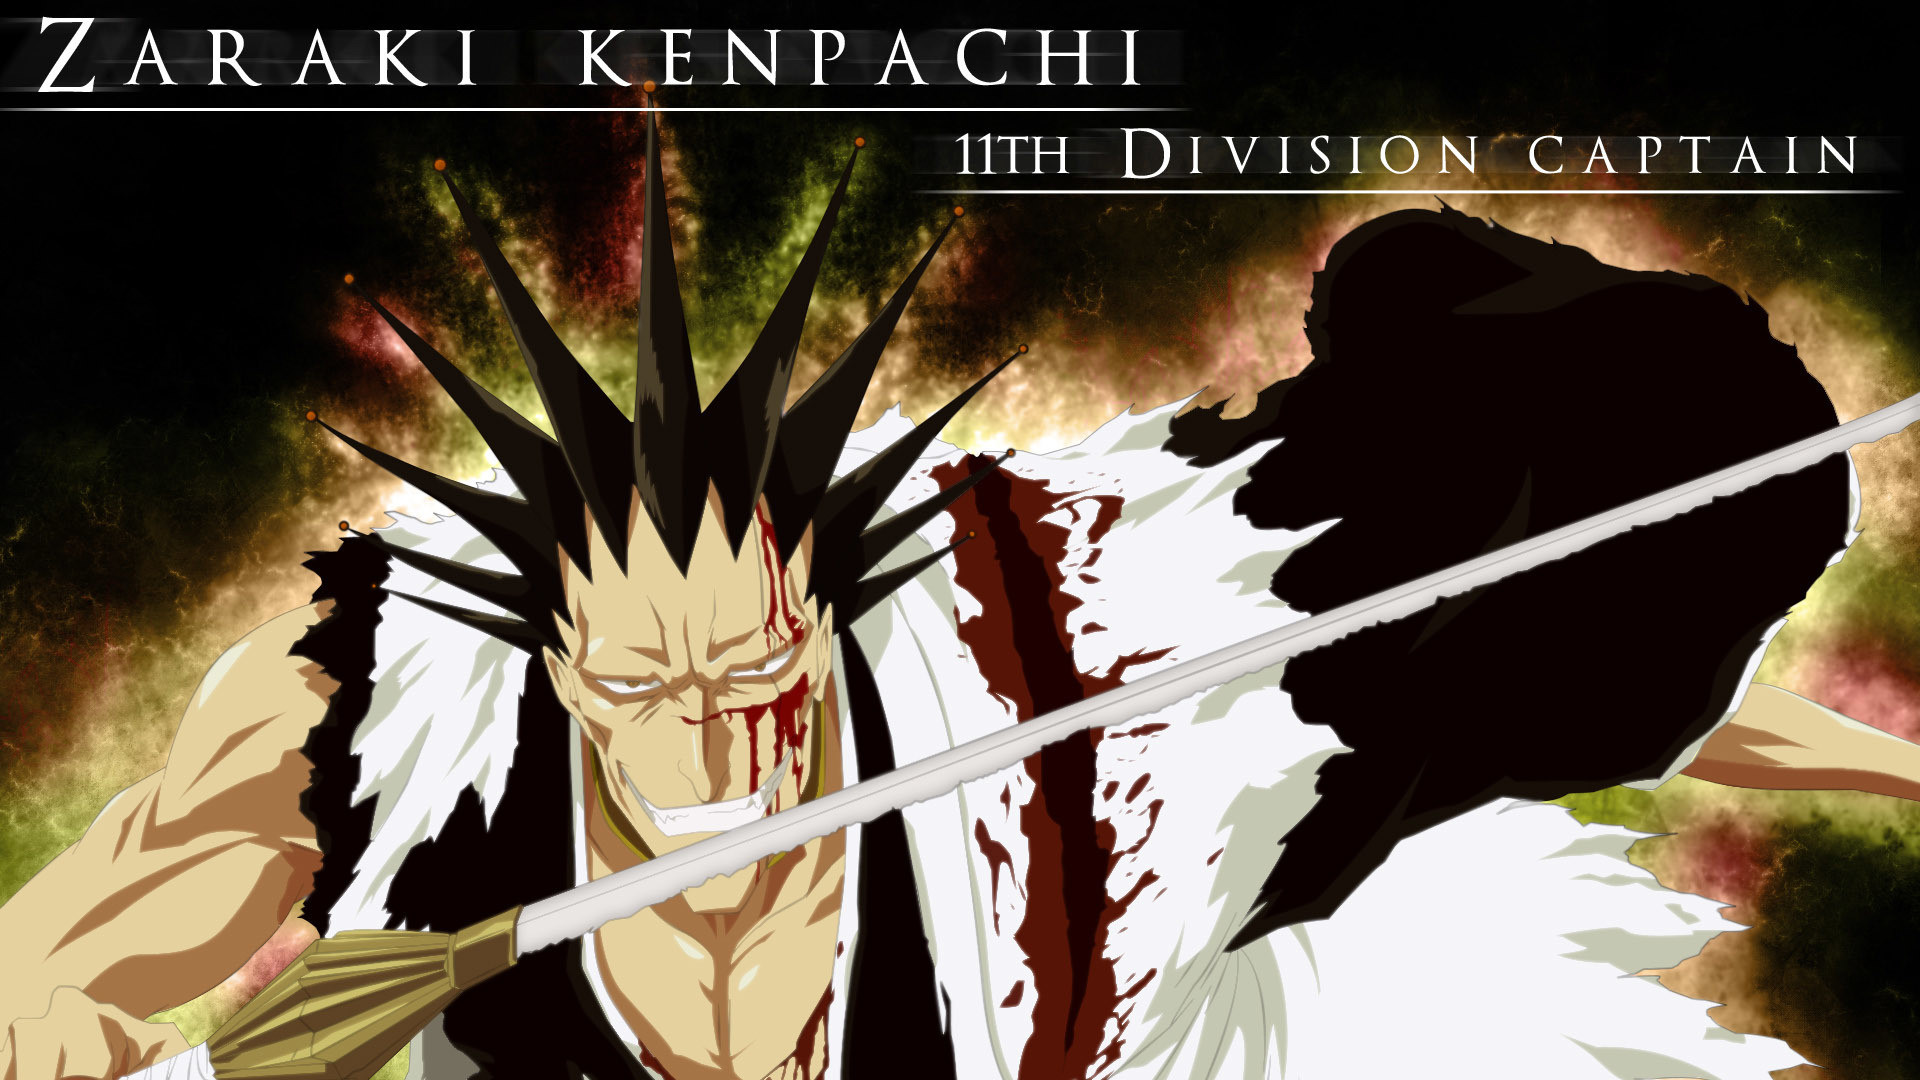 1920x1080 Zaraki Kenpachi - Bleach HD Wallpaper